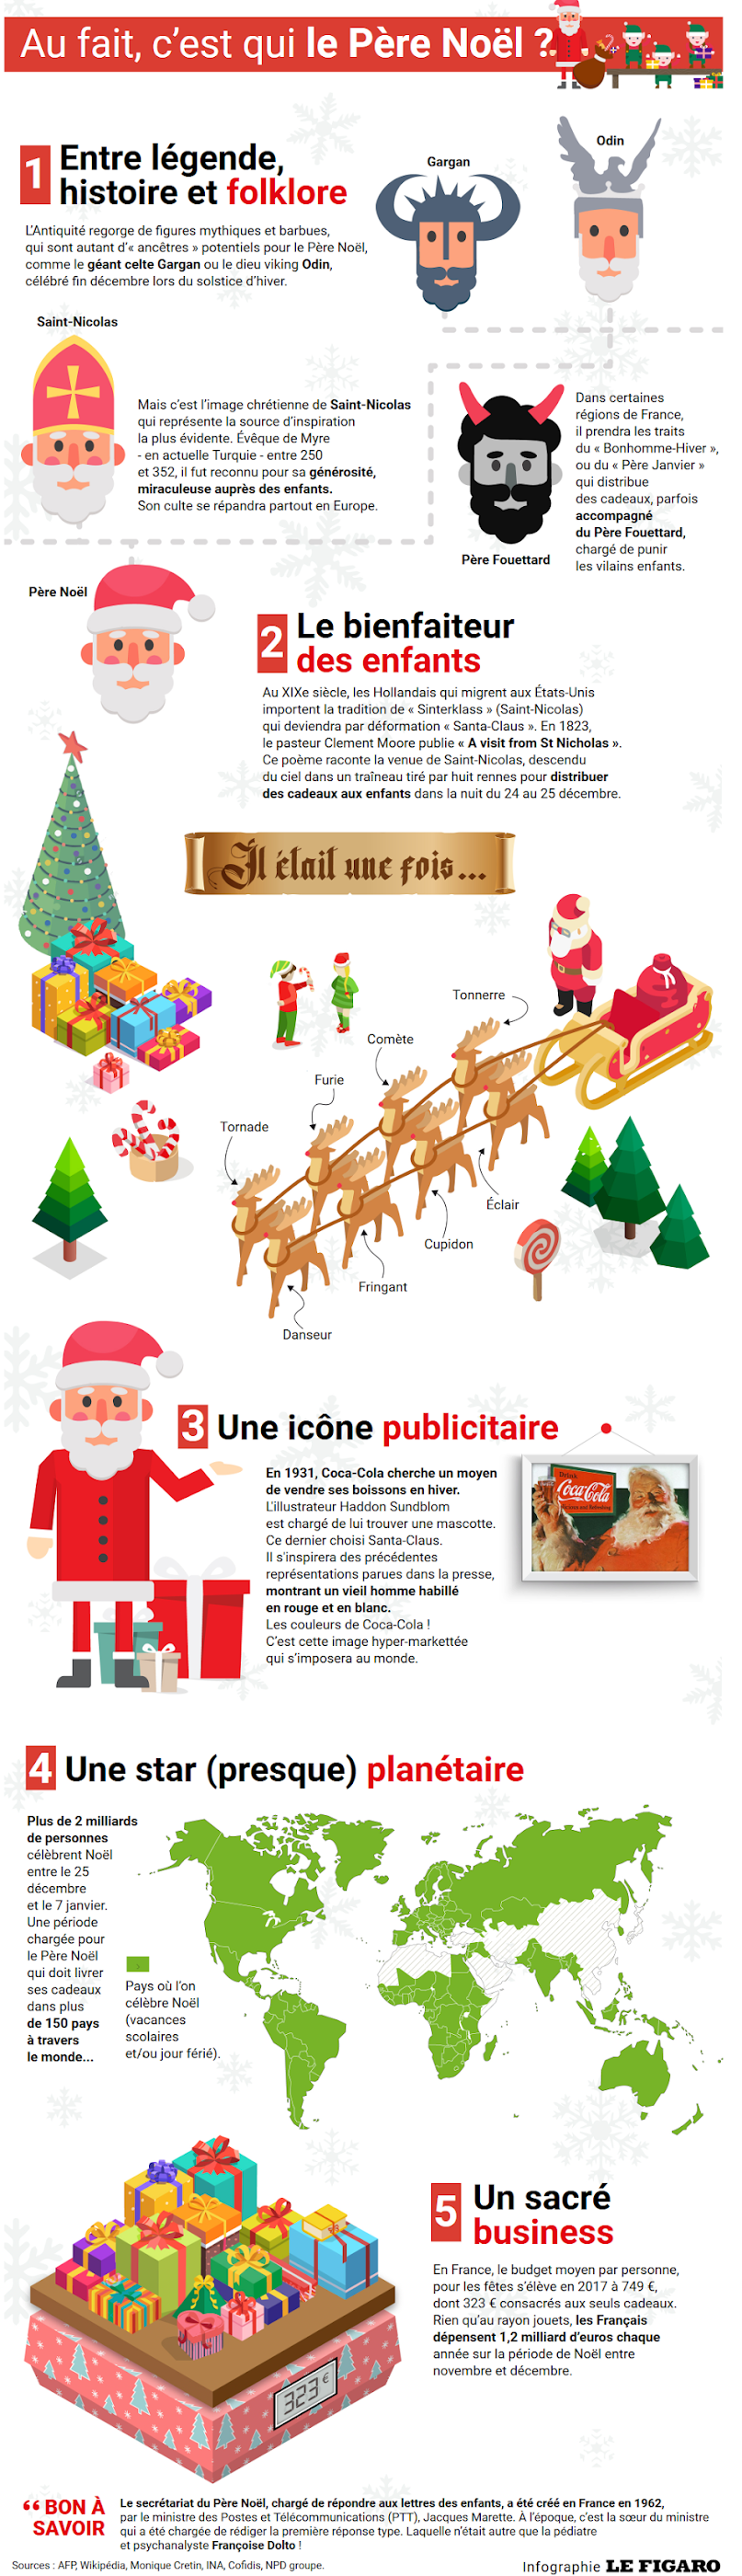 http://www.lefigaro.fr/assets/infographie/print/fixem/AFCQ_HTML/pere_noel/index.html